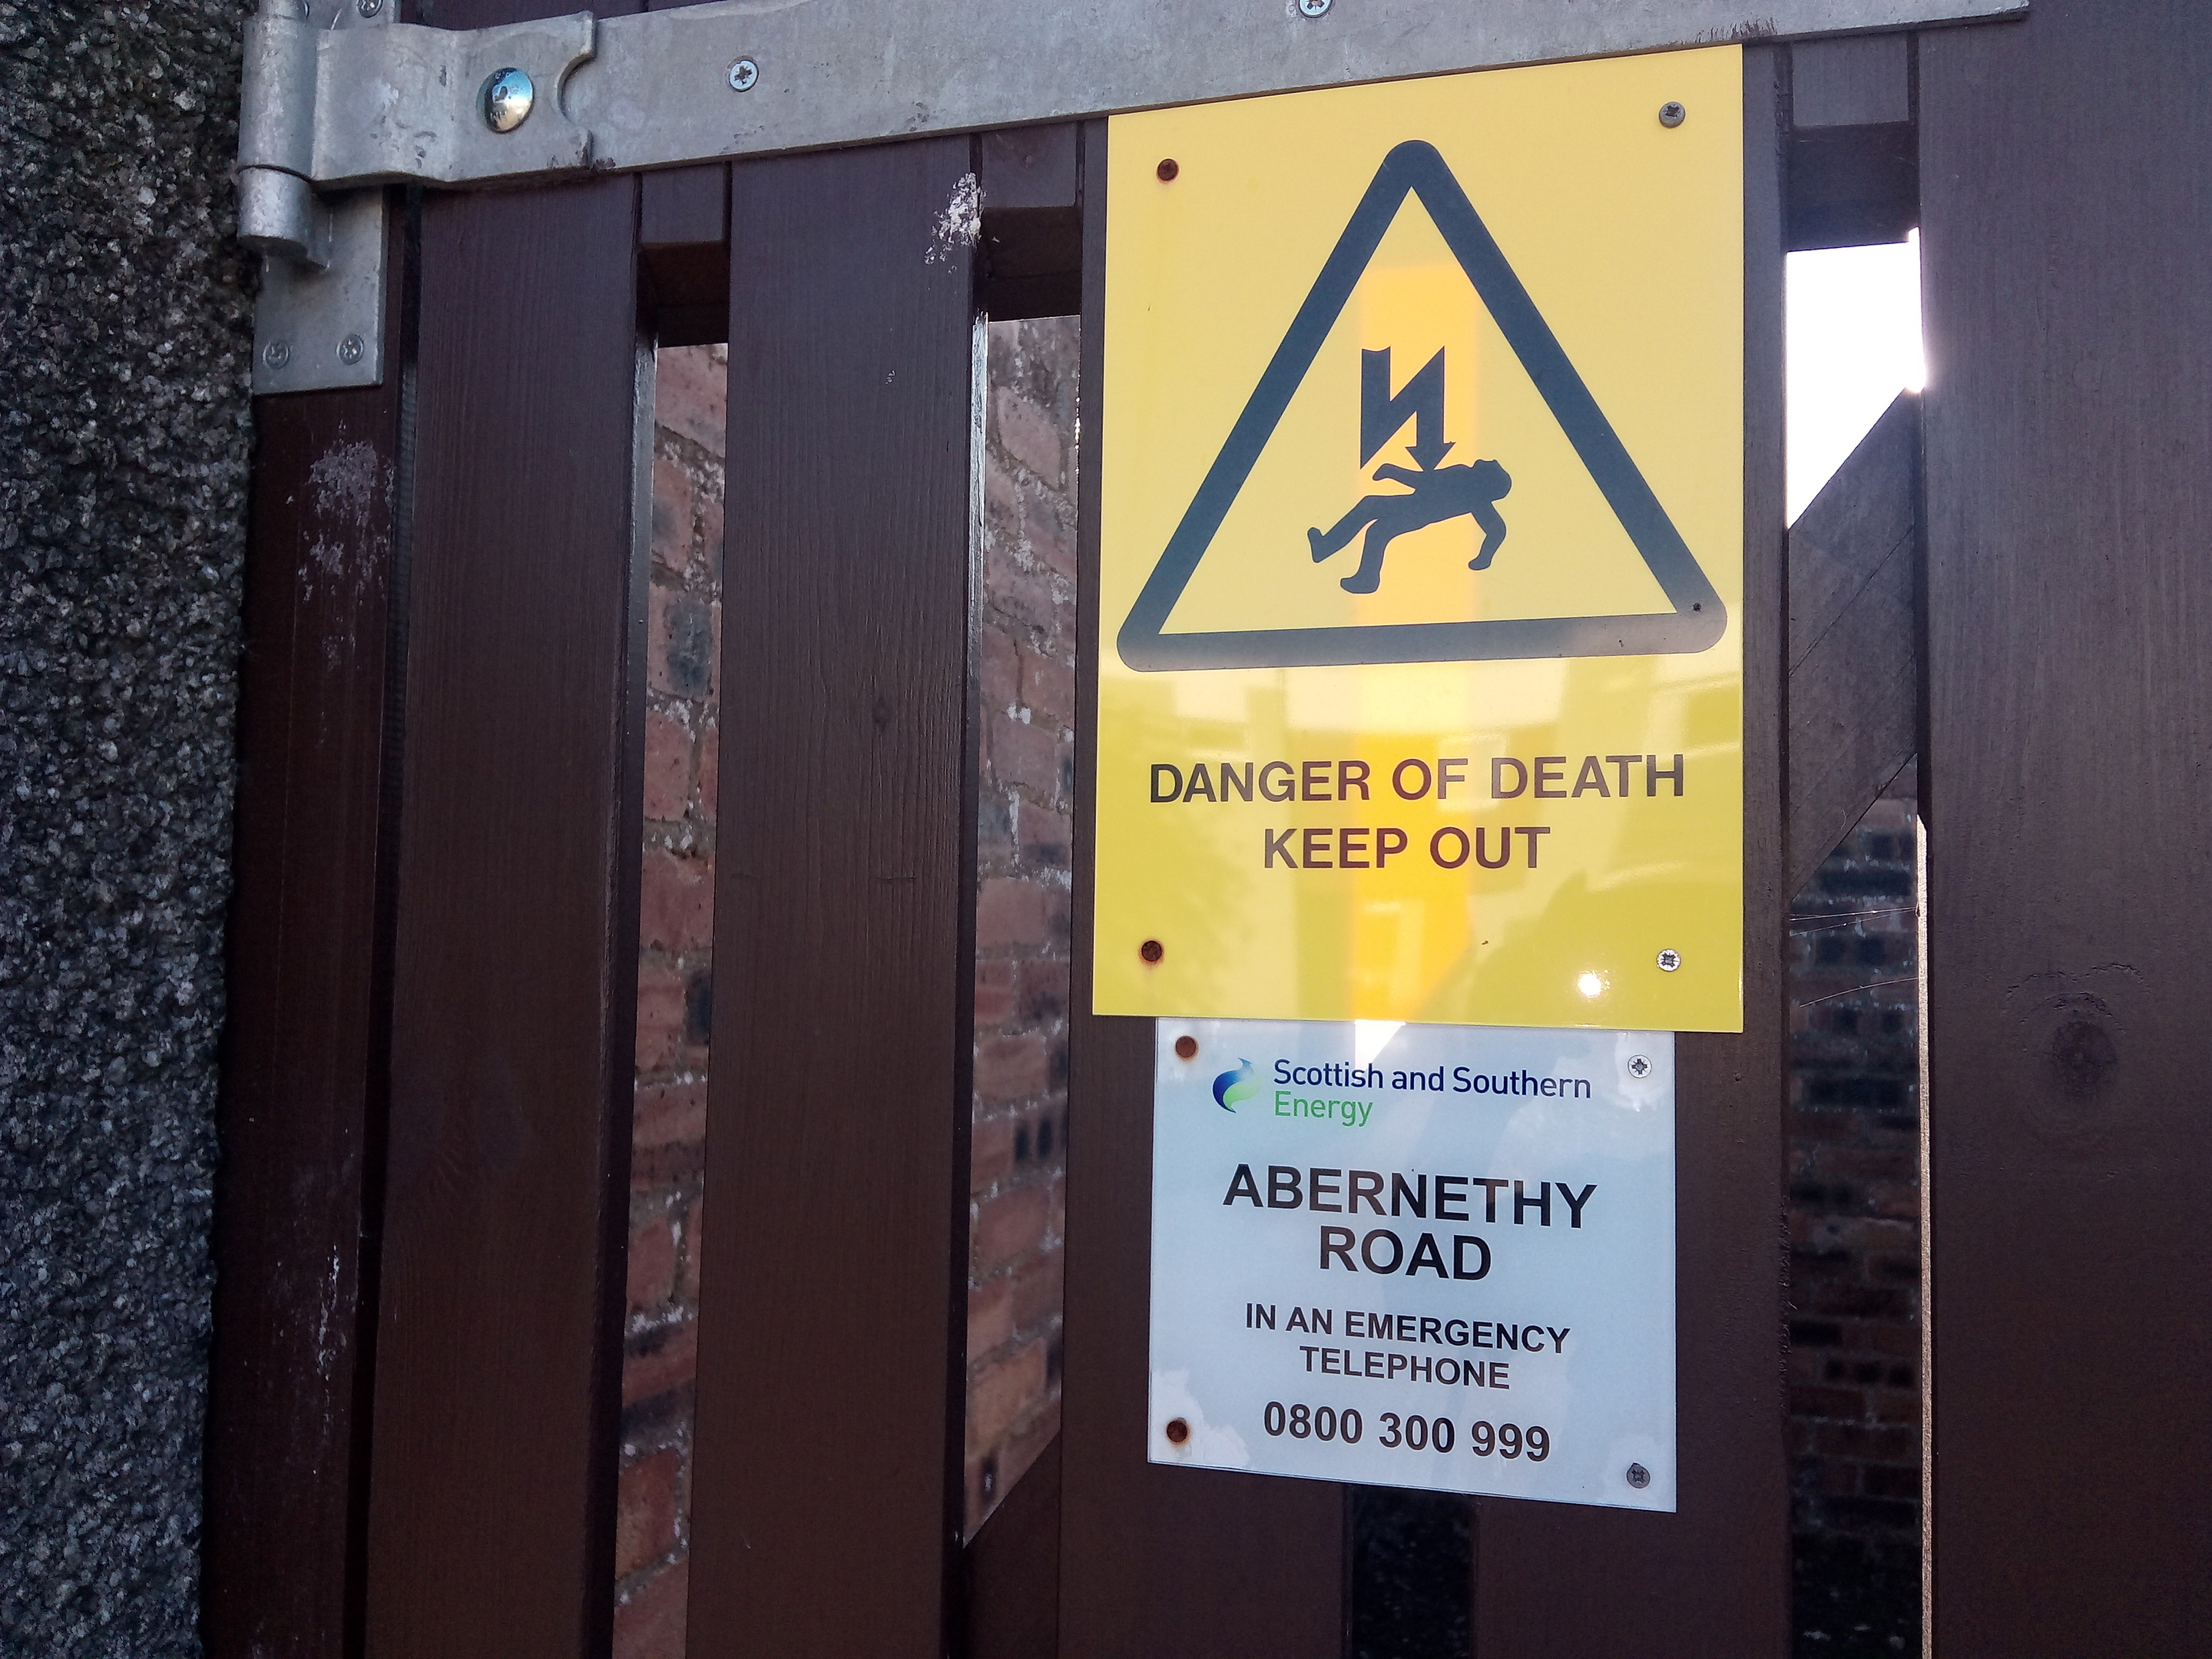 The youths were said to have been putting themselves in danger by playing near the electricity sub station.